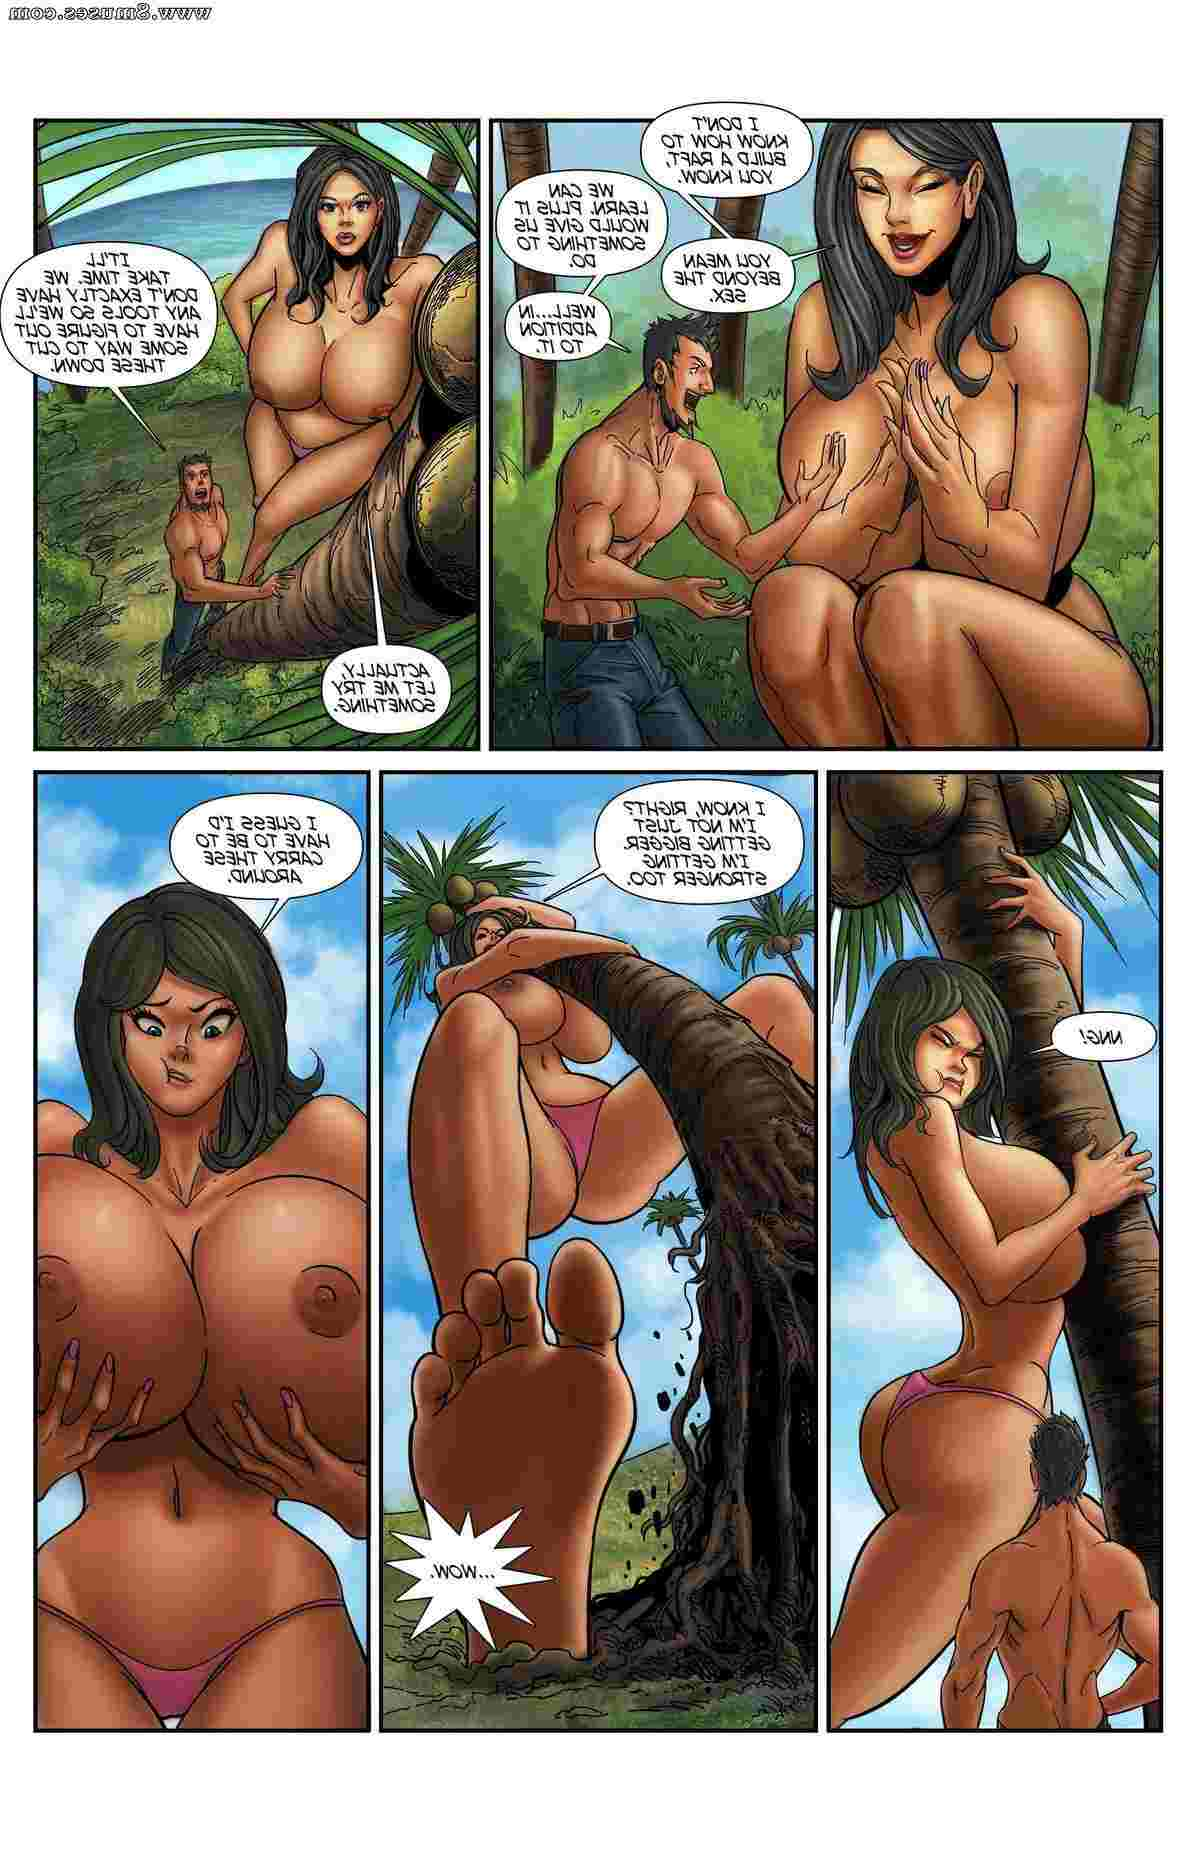 Giantess-Club-Comics/Going-Down-Growing-Up Going_Down_Growing_Up__8muses_-_Sex_and_Porn_Comics_21.jpg